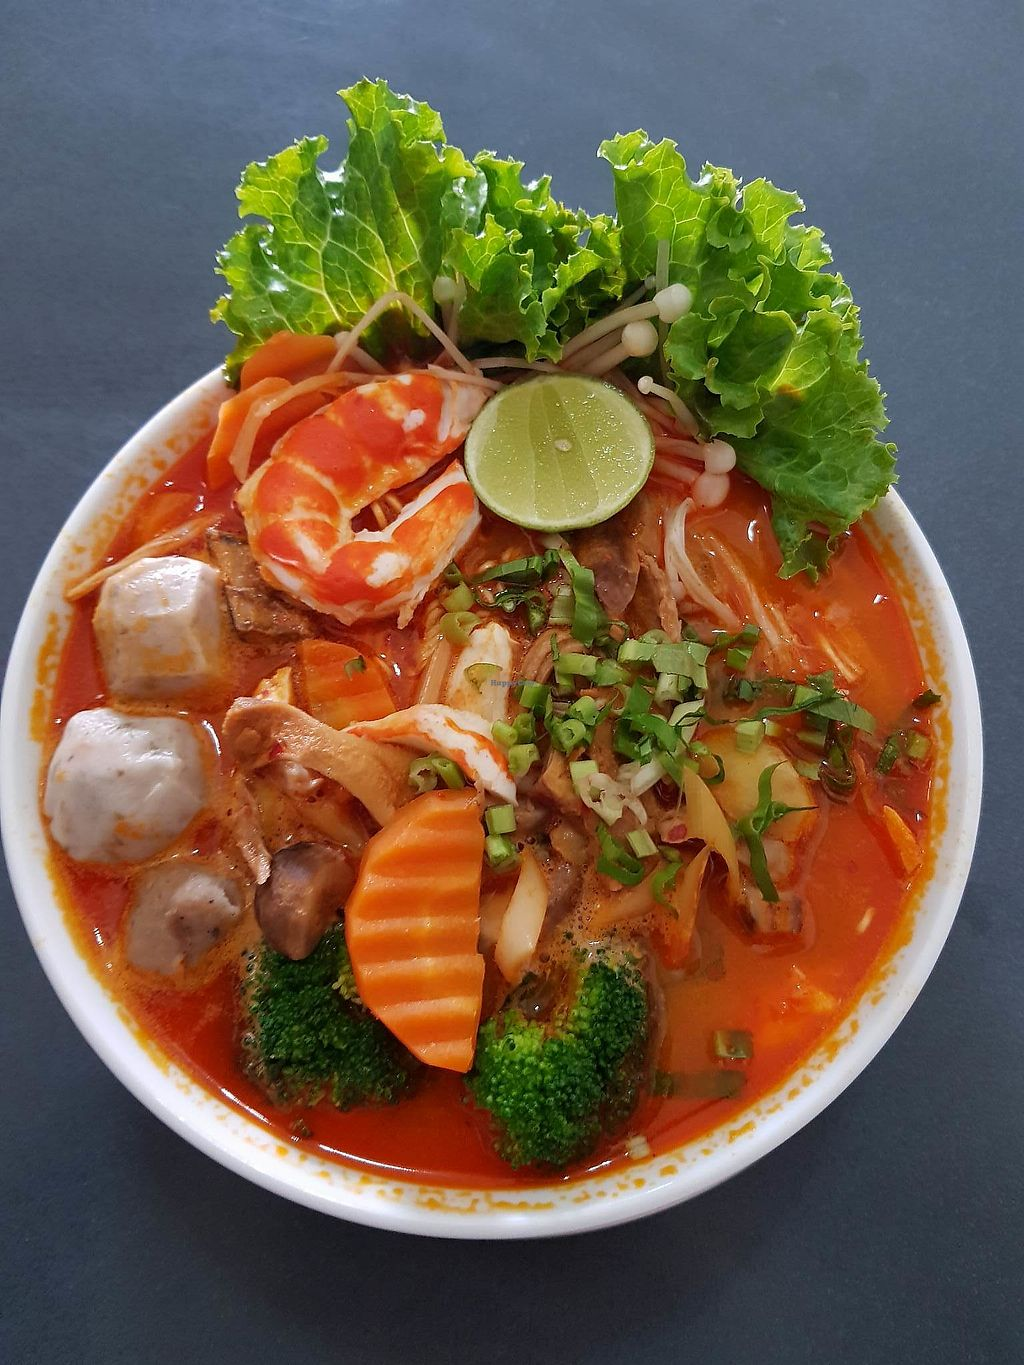 "Photo of Kor An Doeuk Vegetarian Food & Cafe  by <a href=""/members/profile/tauchung"">tauchung</a> <br/>Tom-yam Noodle <br/> January 6, 2018  - <a href='/contact/abuse/image/106622/343471'>Report</a>"